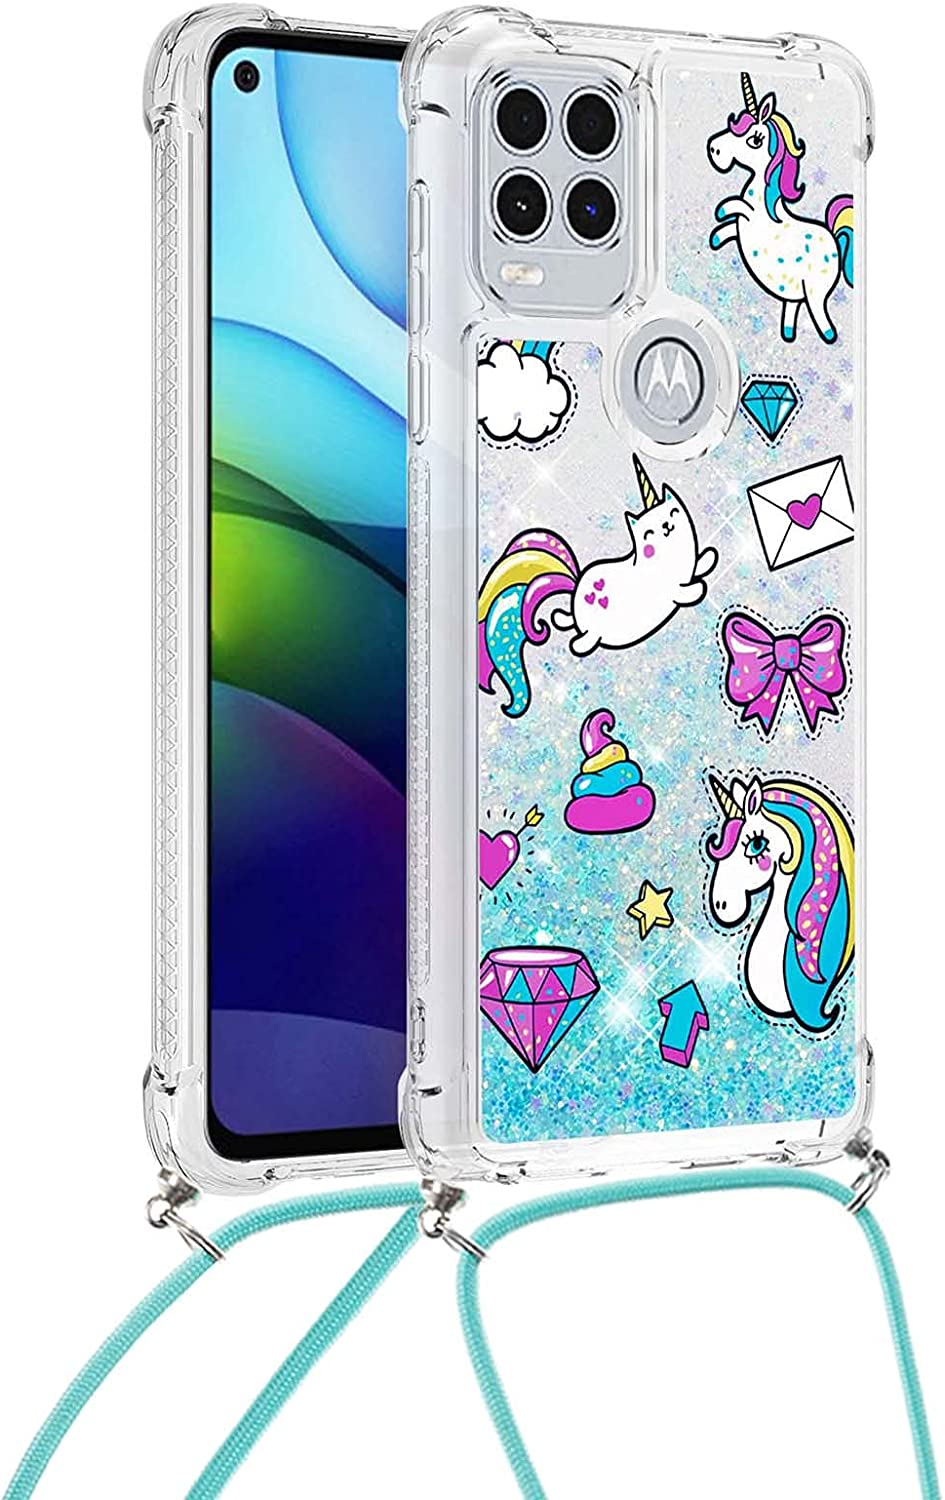 Classic Charm Designed for Moto G Stylus (2021) 5G Case, Moto G Stylus 5G Case for Women Crossbody Case Bling Glitter Phone Cover with Lanyard Cord Strap-7